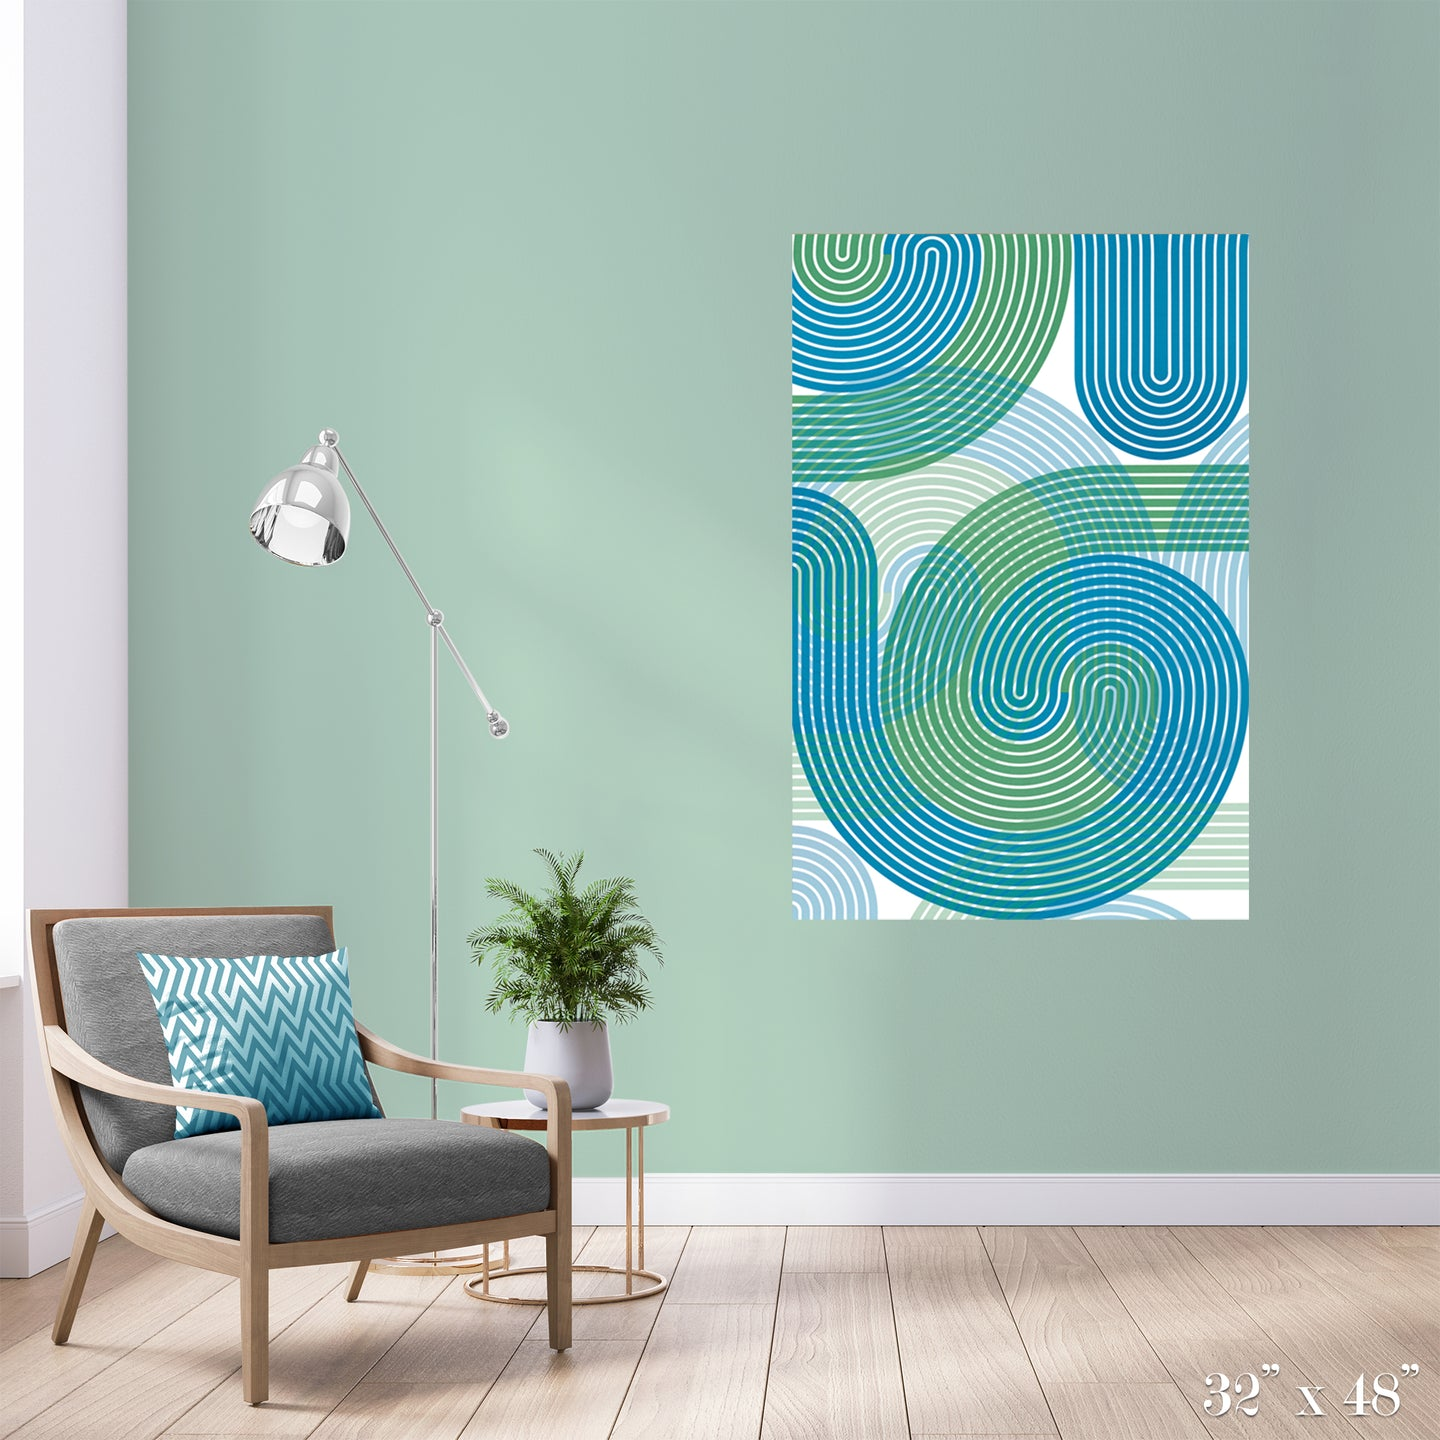 Stripe Vortex Colossal Art Print